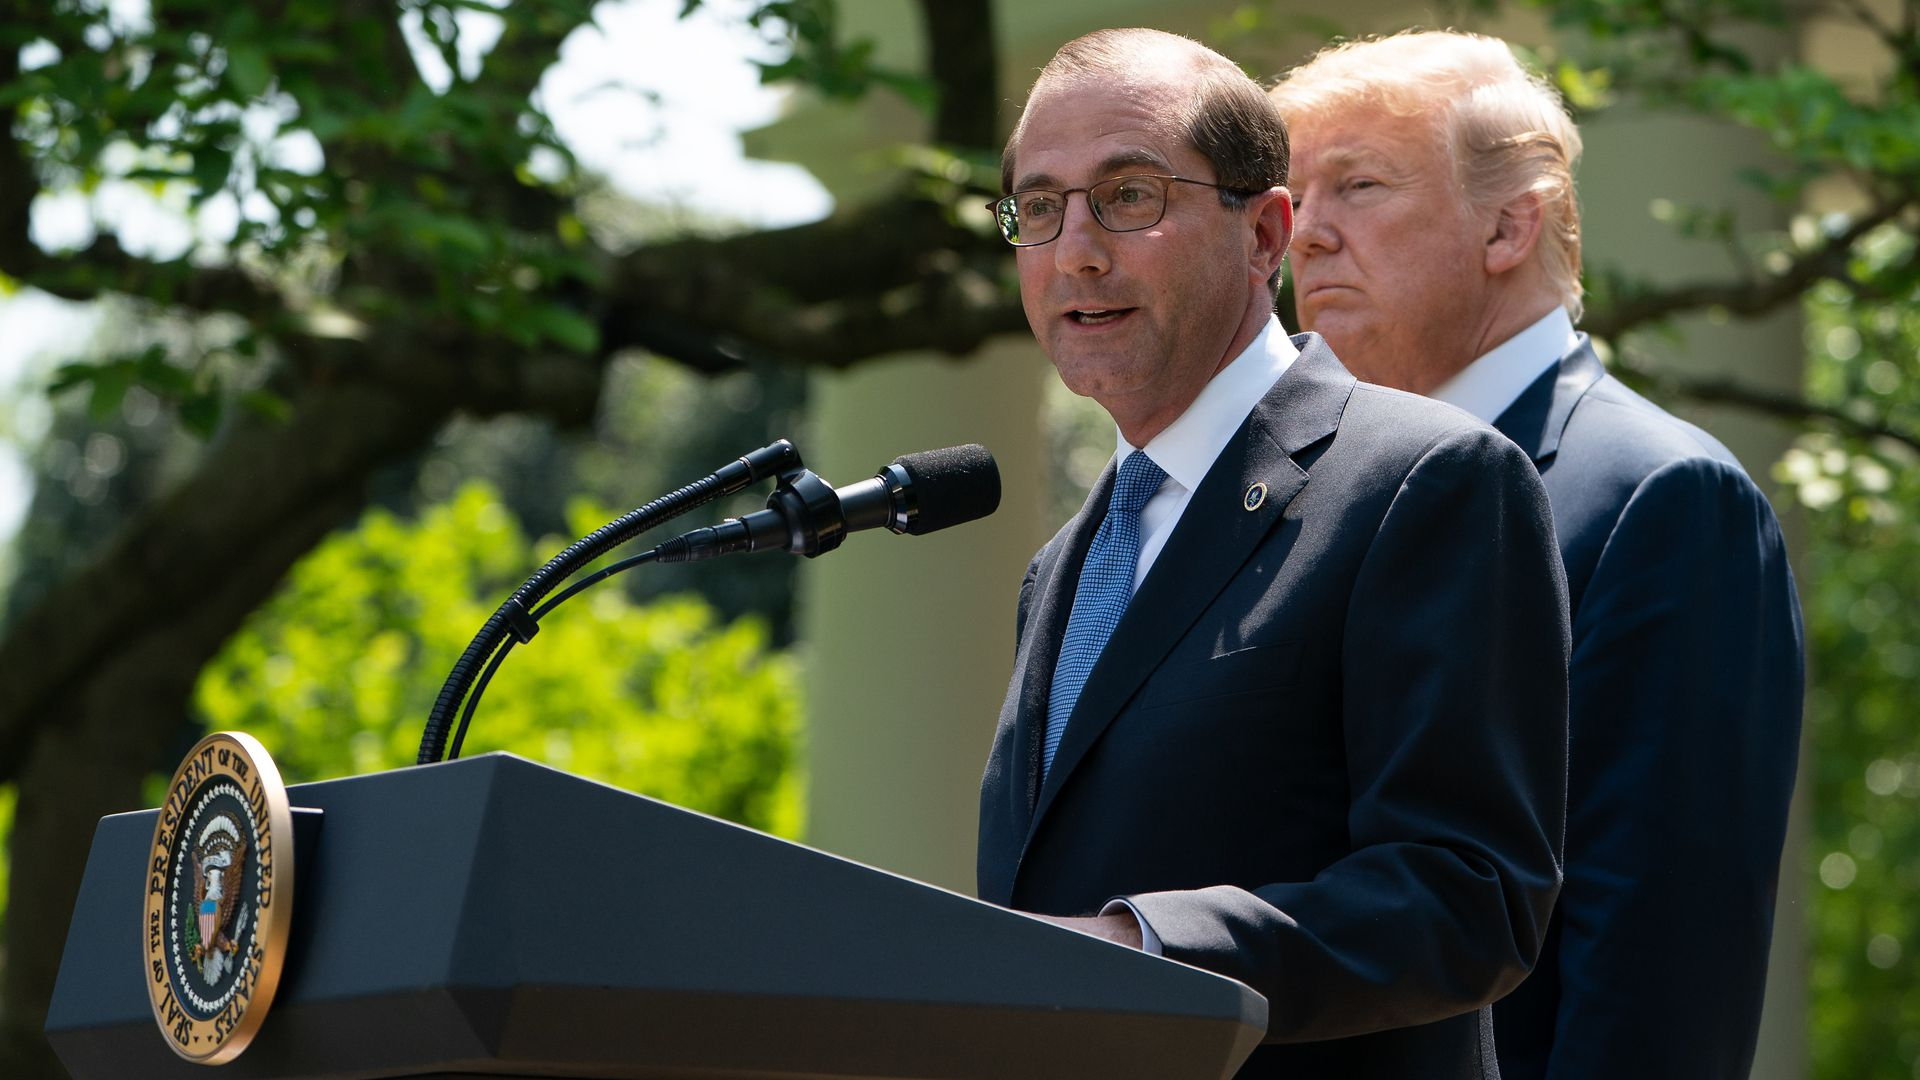 President Trump and HHS secretary Alex Azar